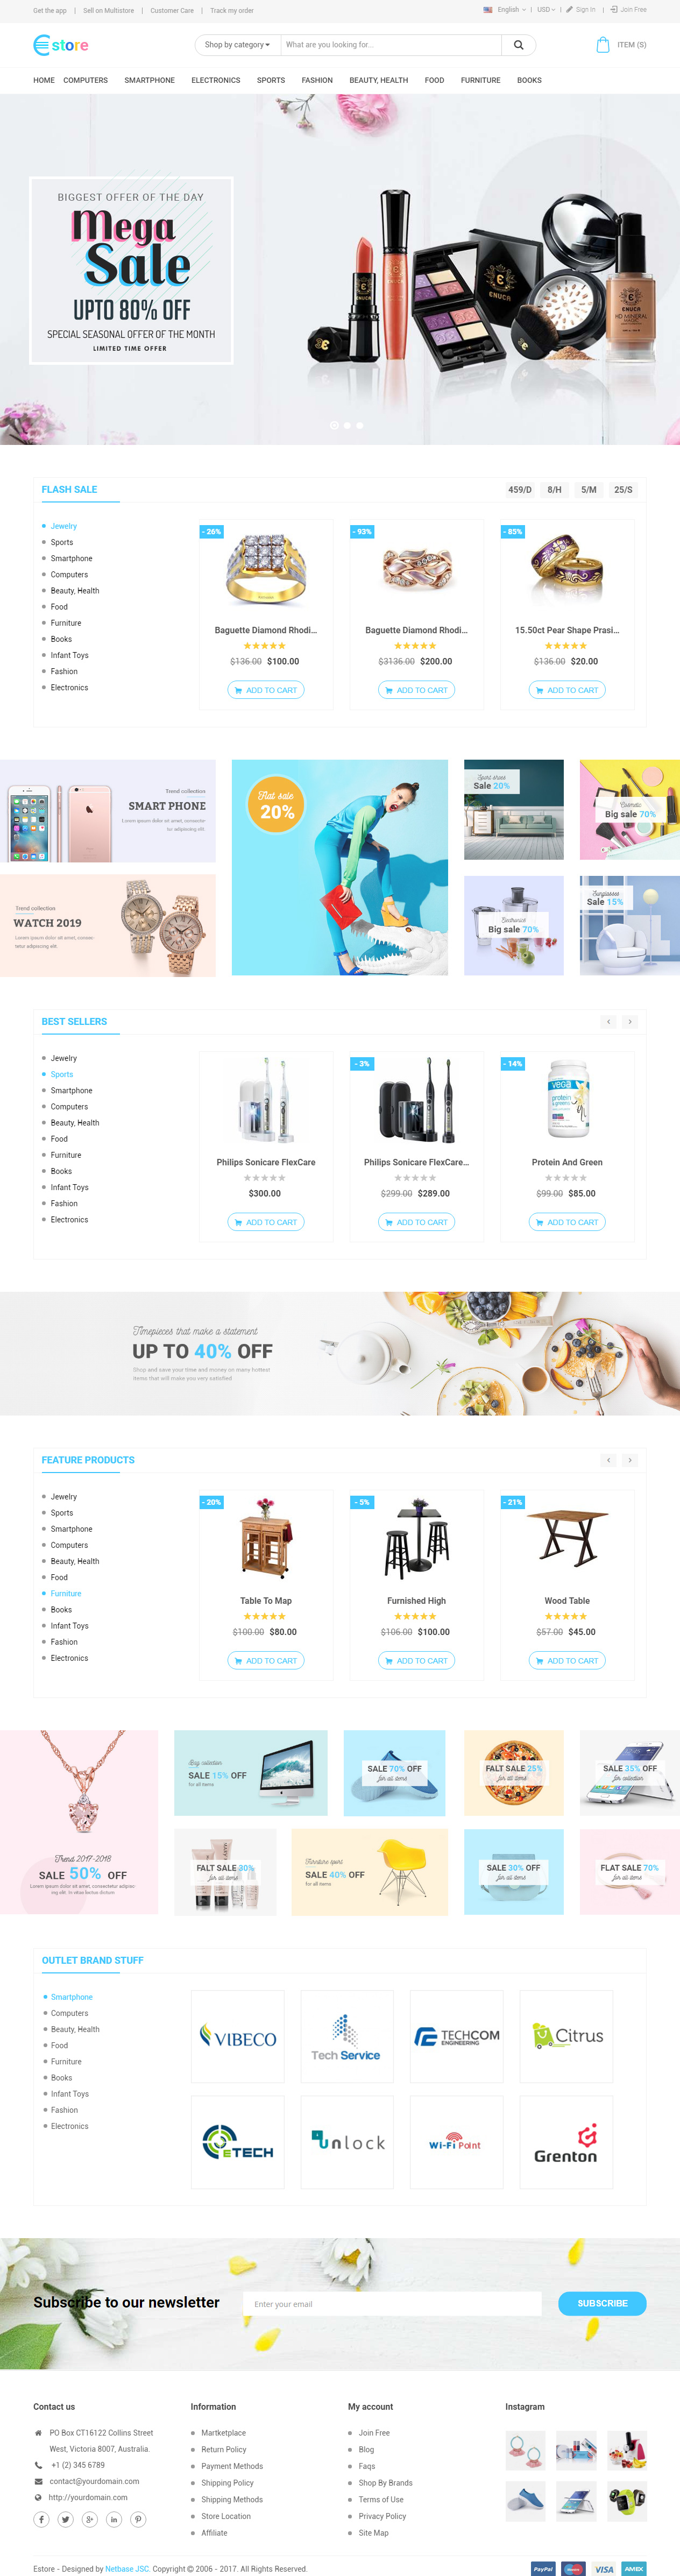 25+ Best & Top Magento 2 Themes 2019 - Responsive Miracle